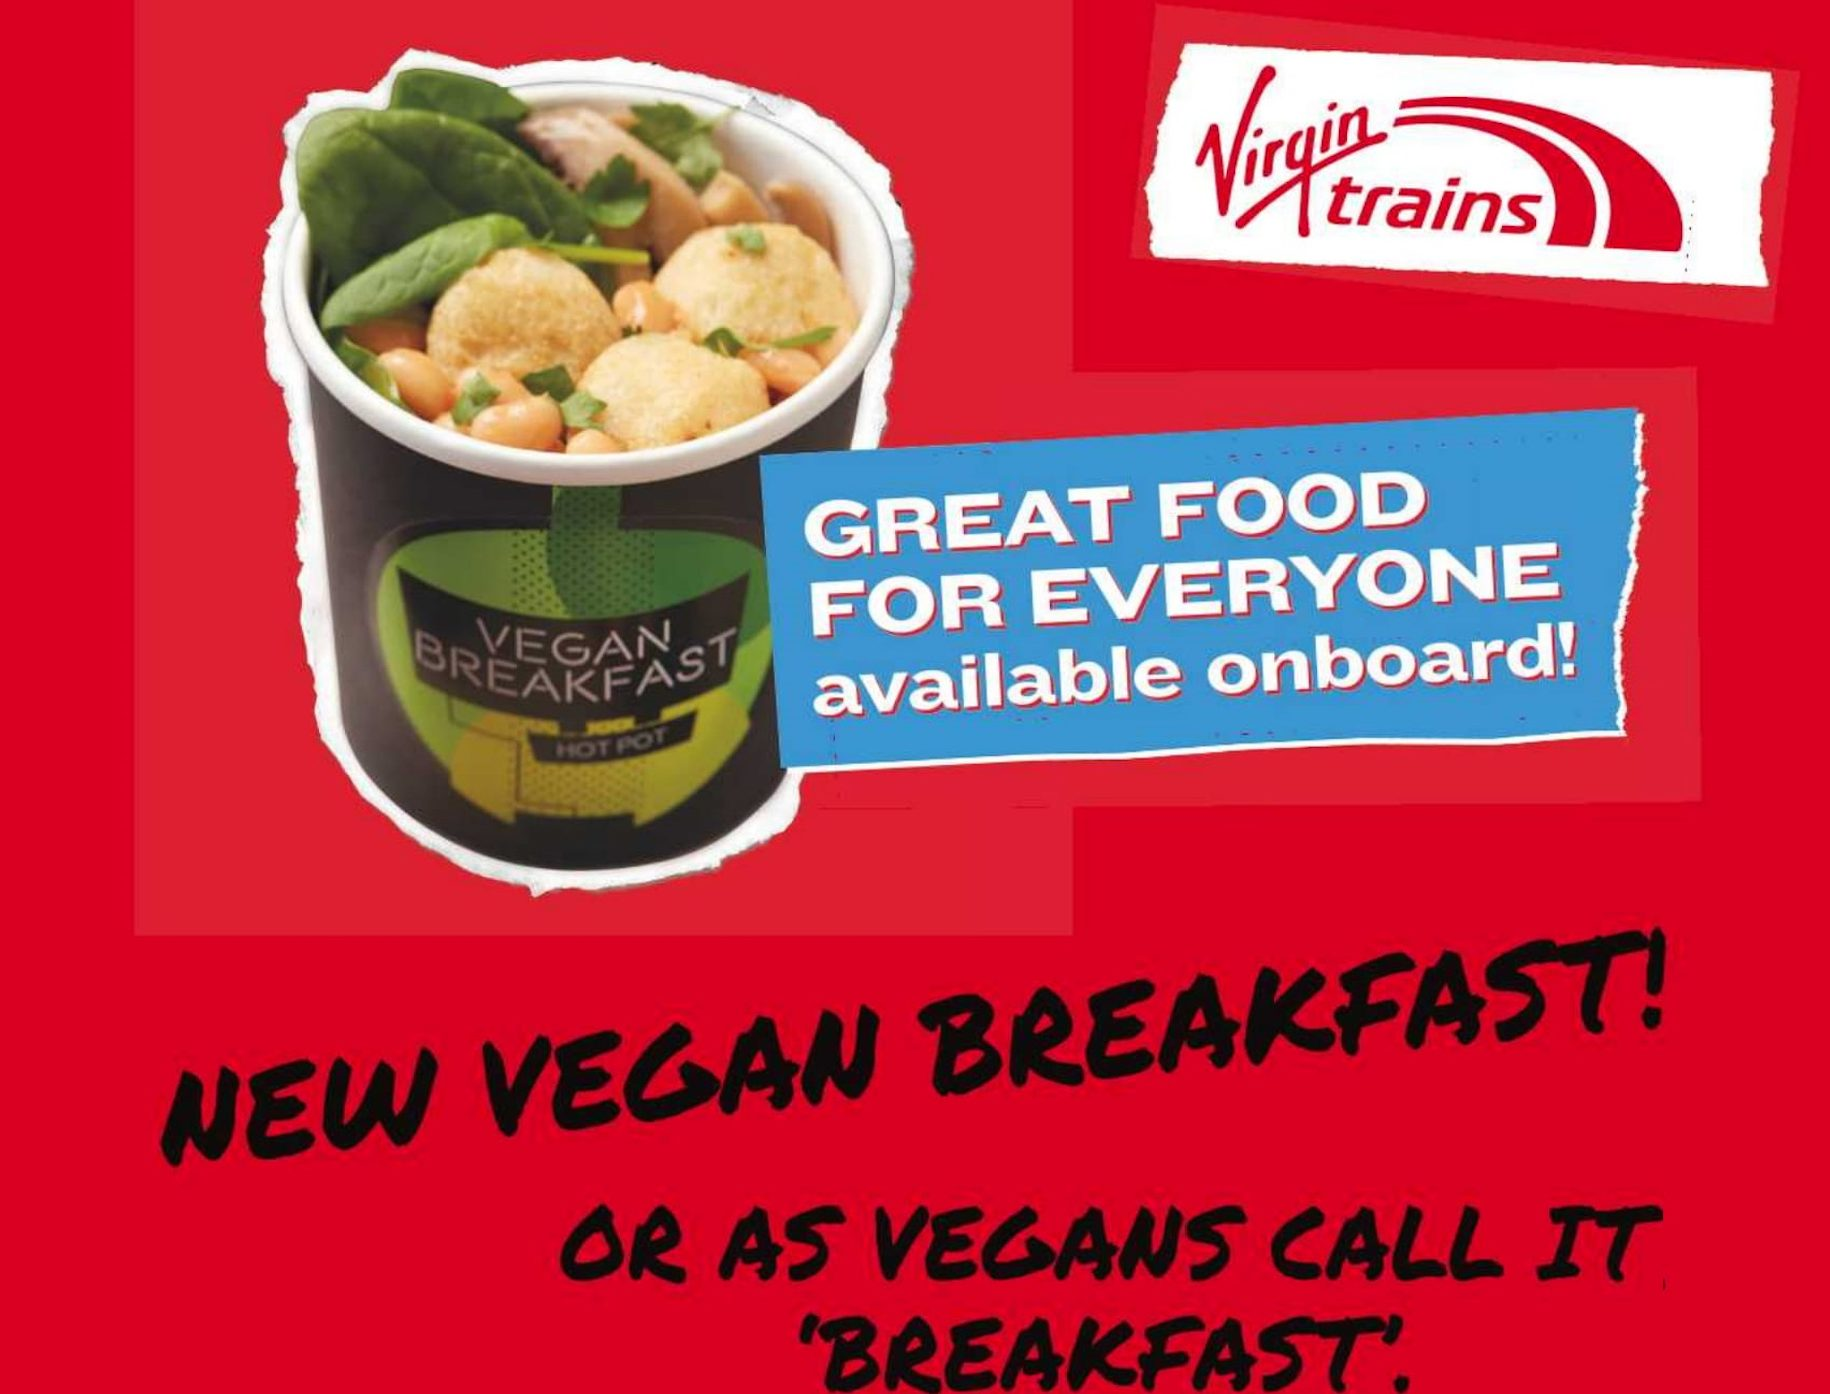 Virgin Trains poster vegan food